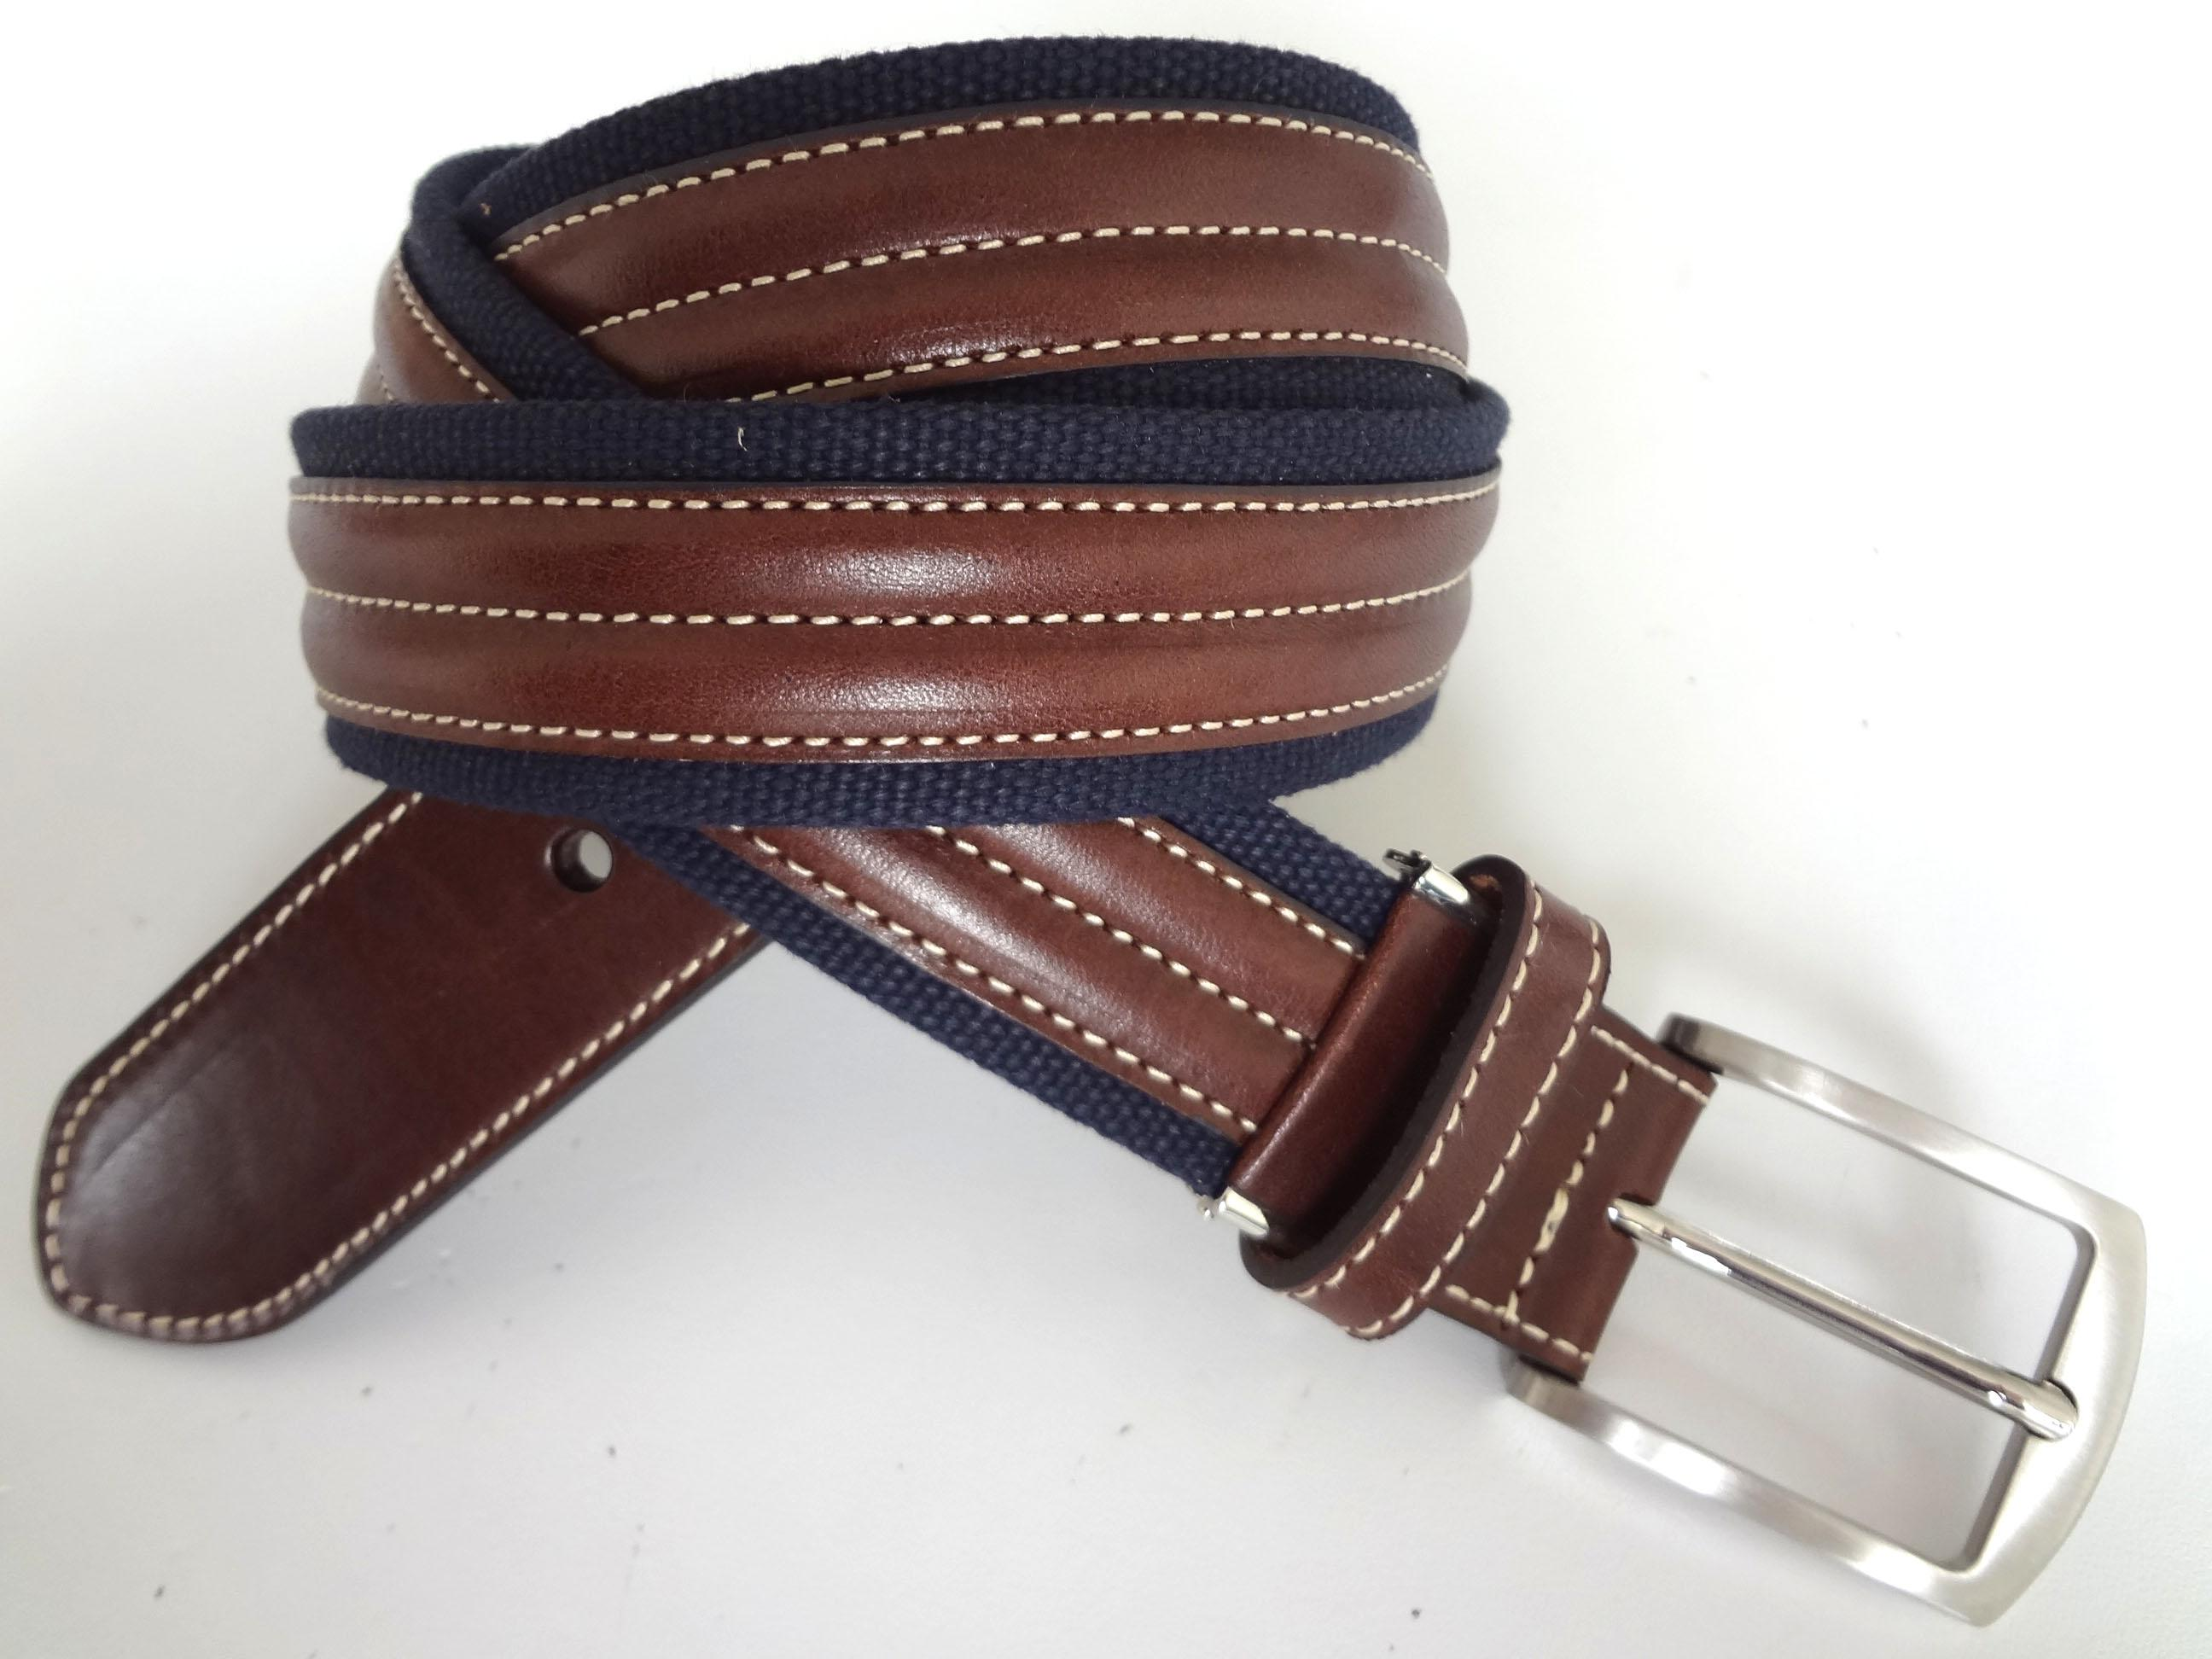 Shop from dozens of men's casual belt and jean belt styles, from classic to western belts, in leather, fabric, elastic and more. FREE standard shipping over $ ()